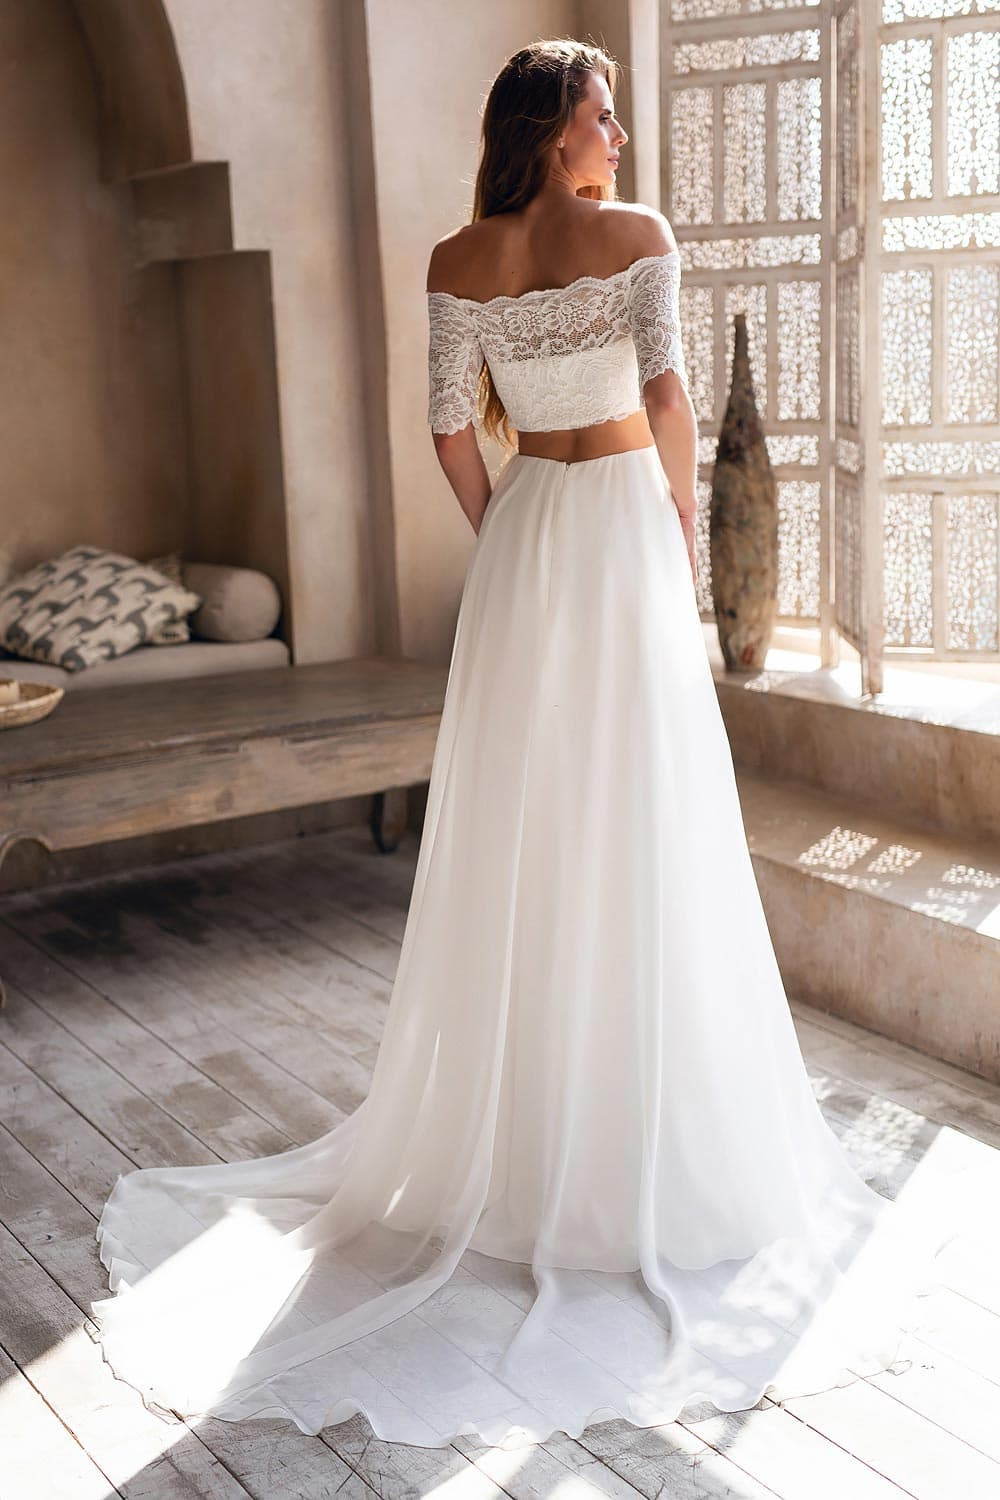 boho wedding dress wedding dress uk boho wedding dress wedding dress shops near me 105